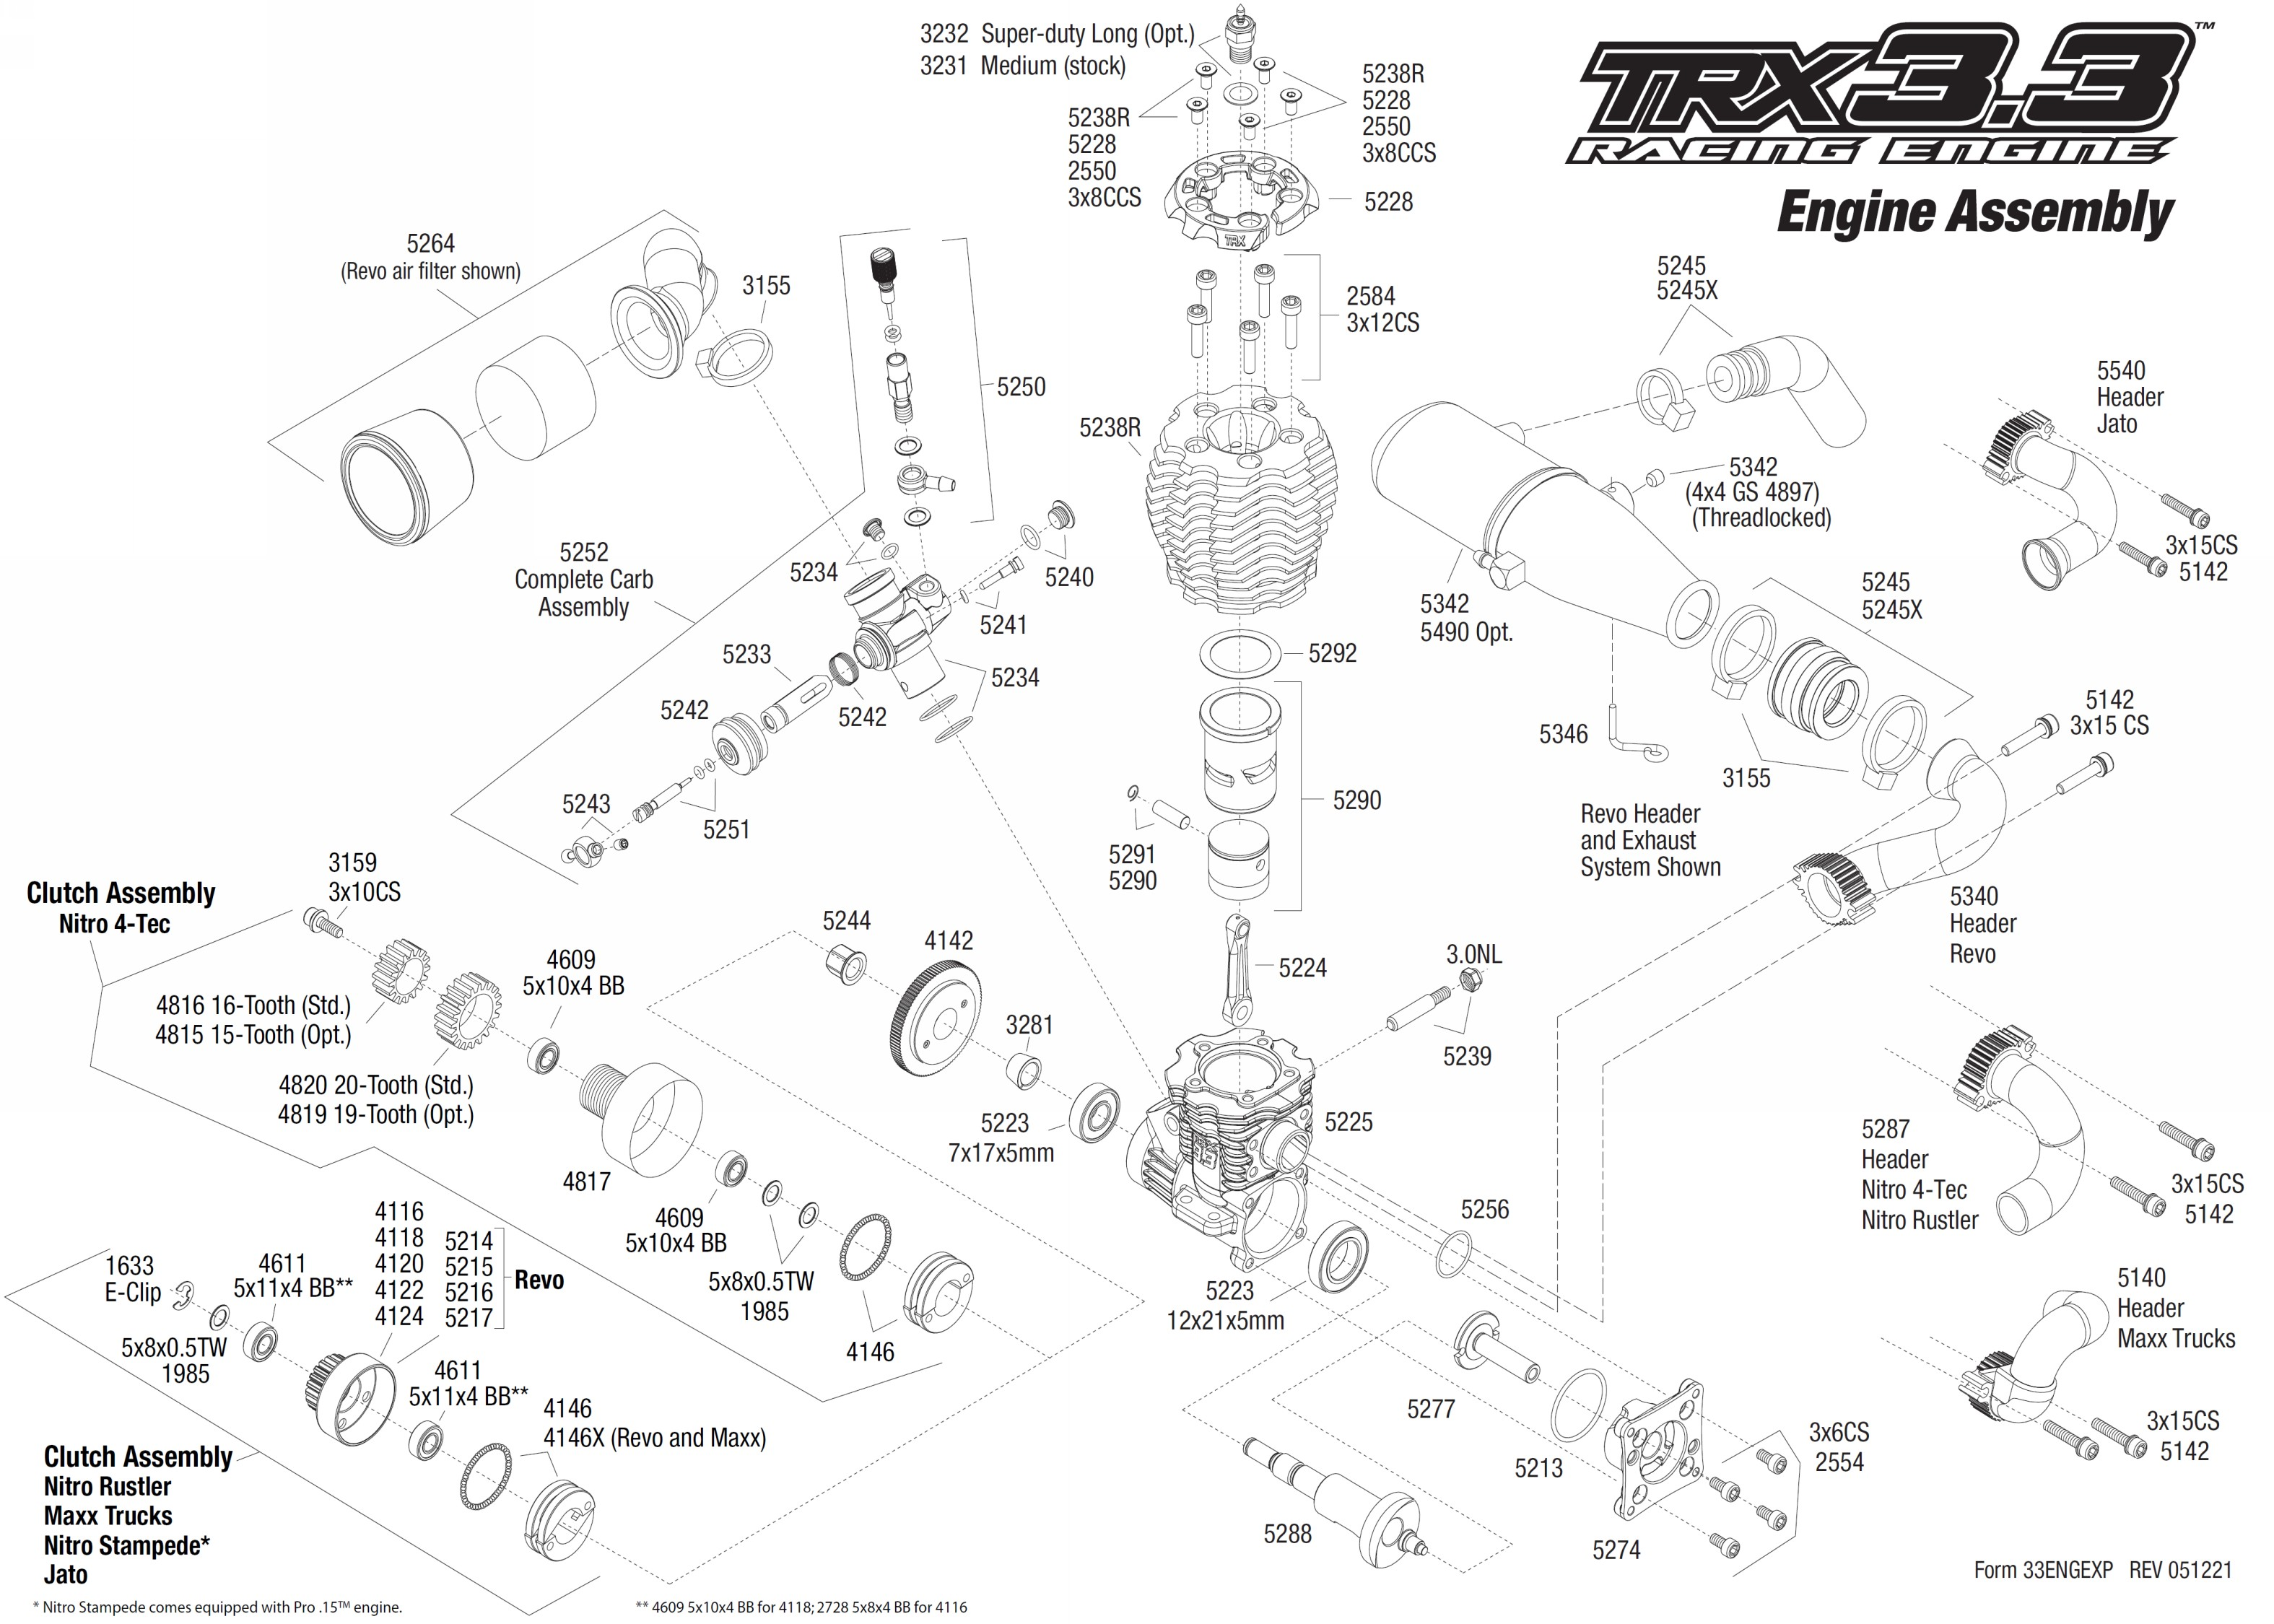 T Maxx 3 Parts Diagram Steerng Archive Of Automotive Wiring 2004 Jaguar Xjr Supercharged Engine Exploded View Traxxas Trx Astra Rh Astramodel Cz